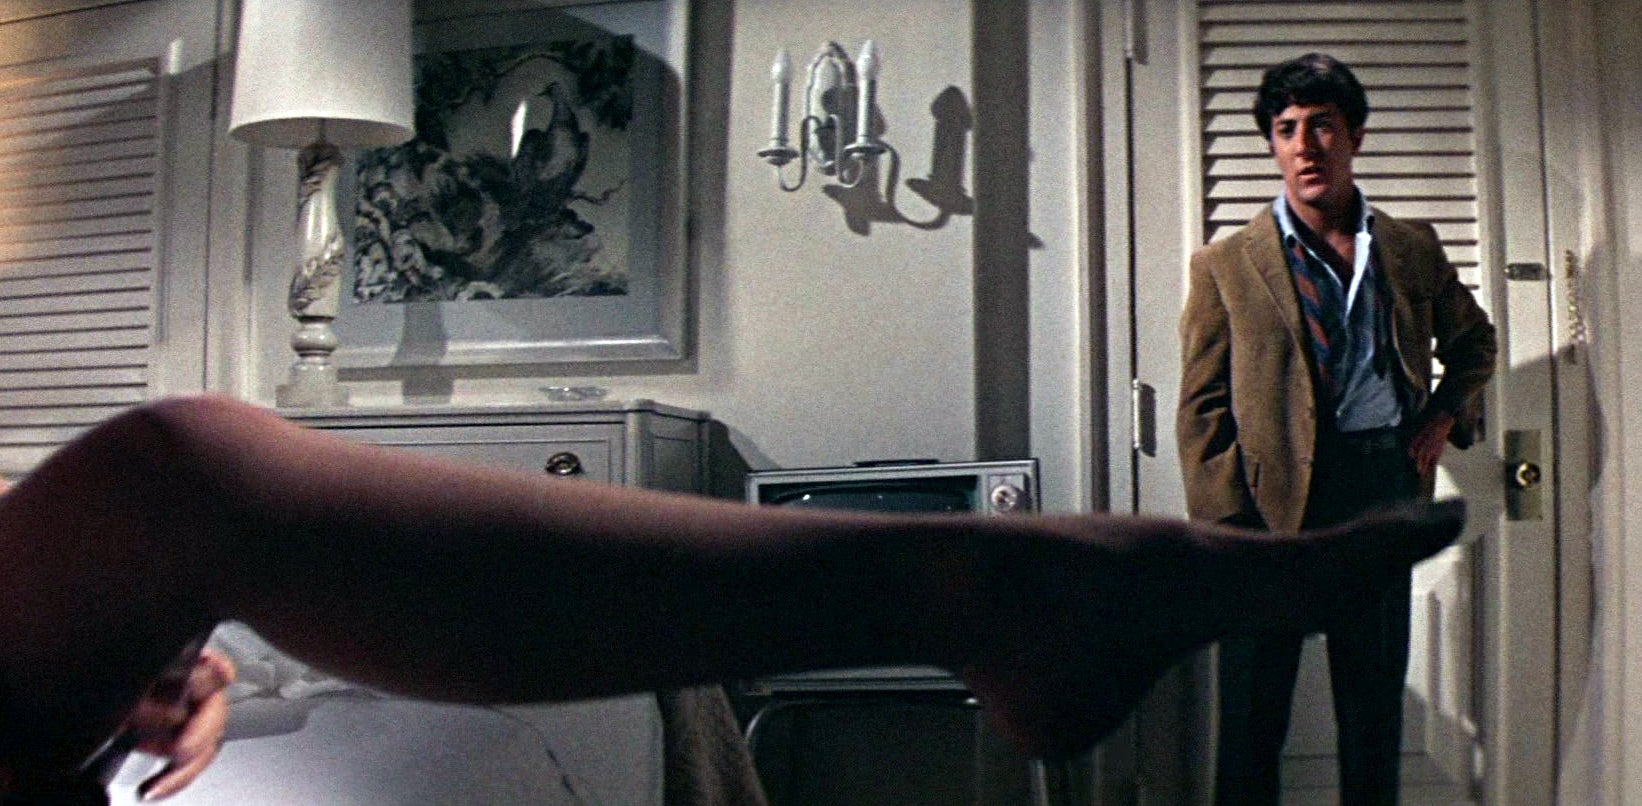 Dustin Hoffman in a scene from The Graduate